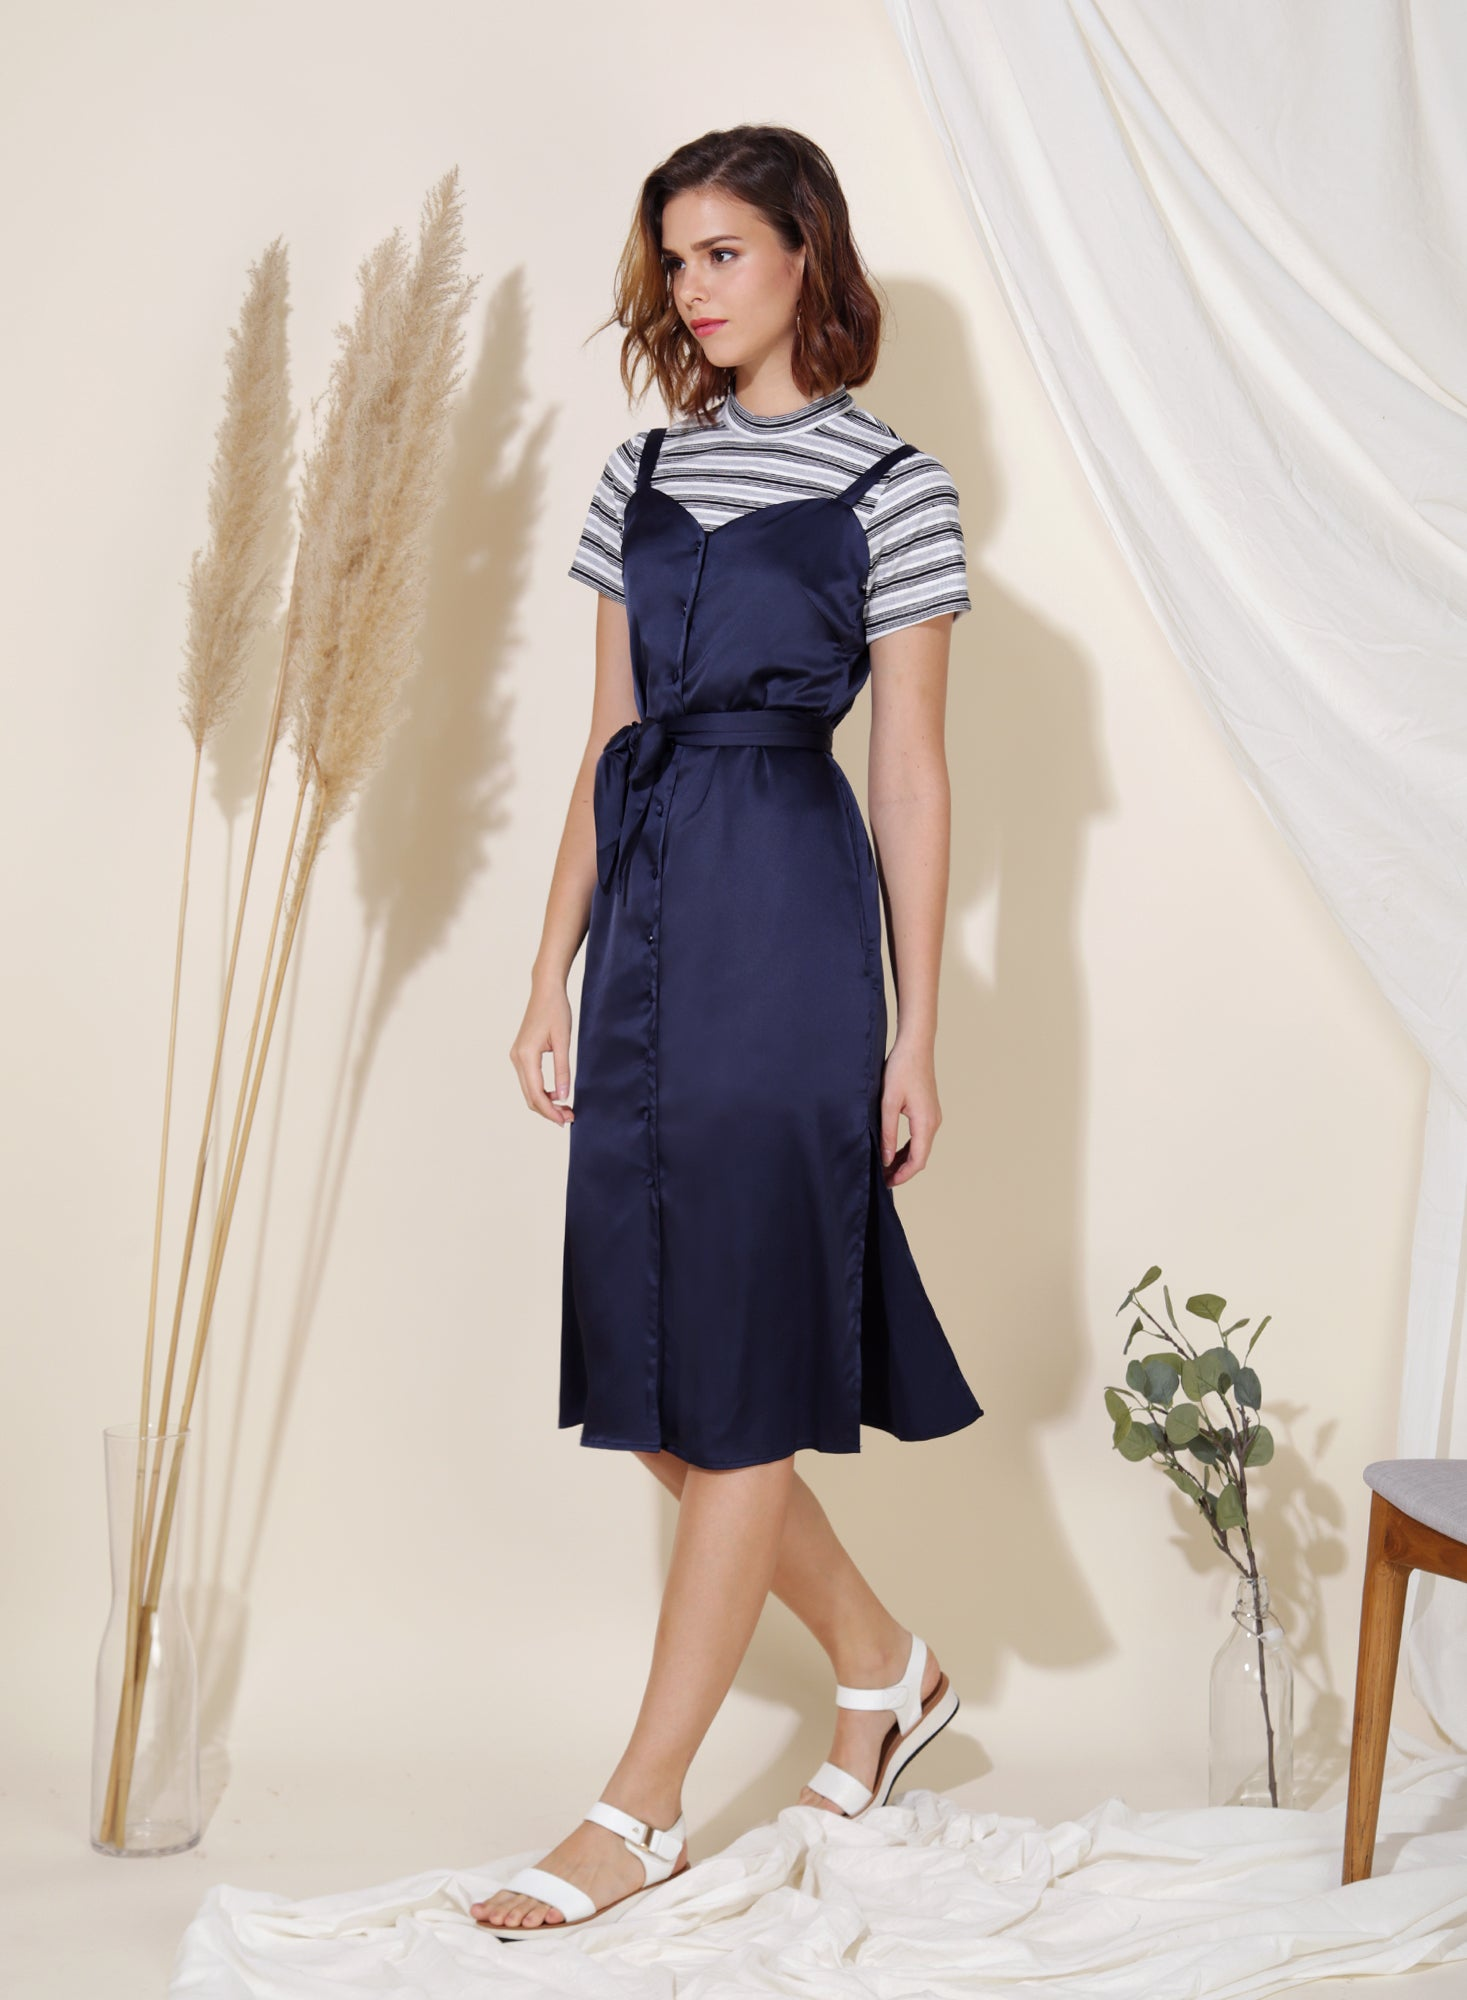 Flicker Button Down Silk Dress (Navy) at $ 41.50 only sold at And Well Dressed Online Fashion Store Singapore